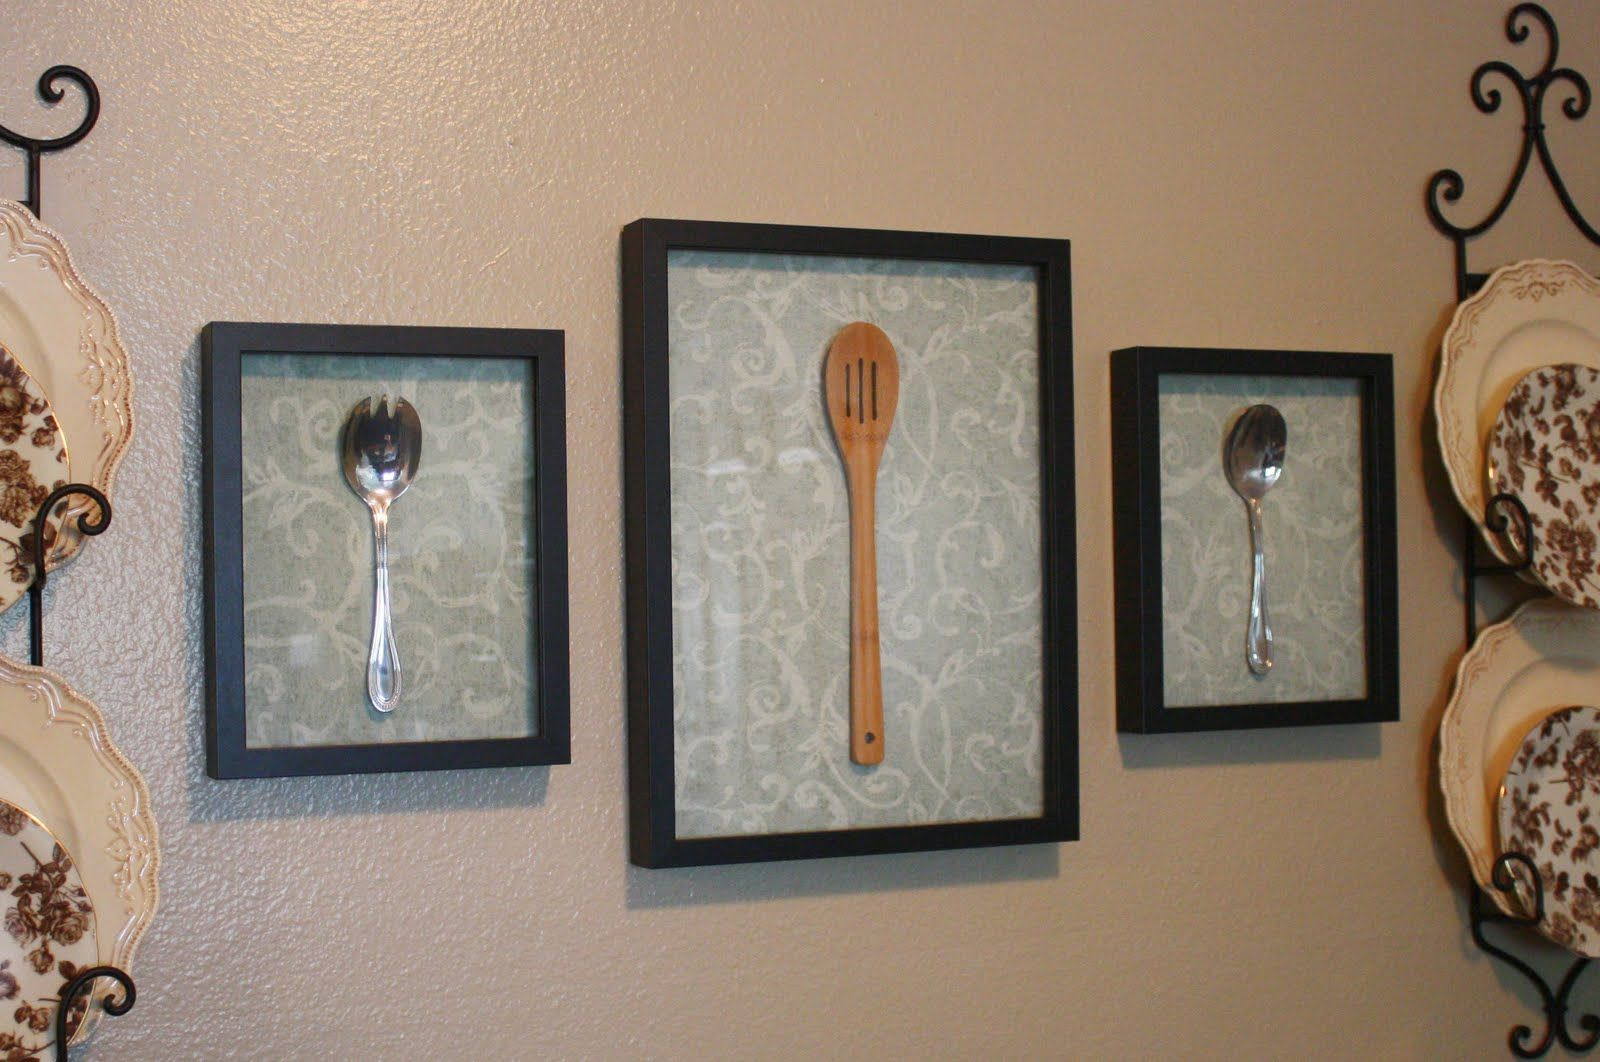 Kitchen:Diy Kitchen Wall Decor All About Diy Kitchen Decor For Wall Kitchen All About DIY Kitchen Design Pictures